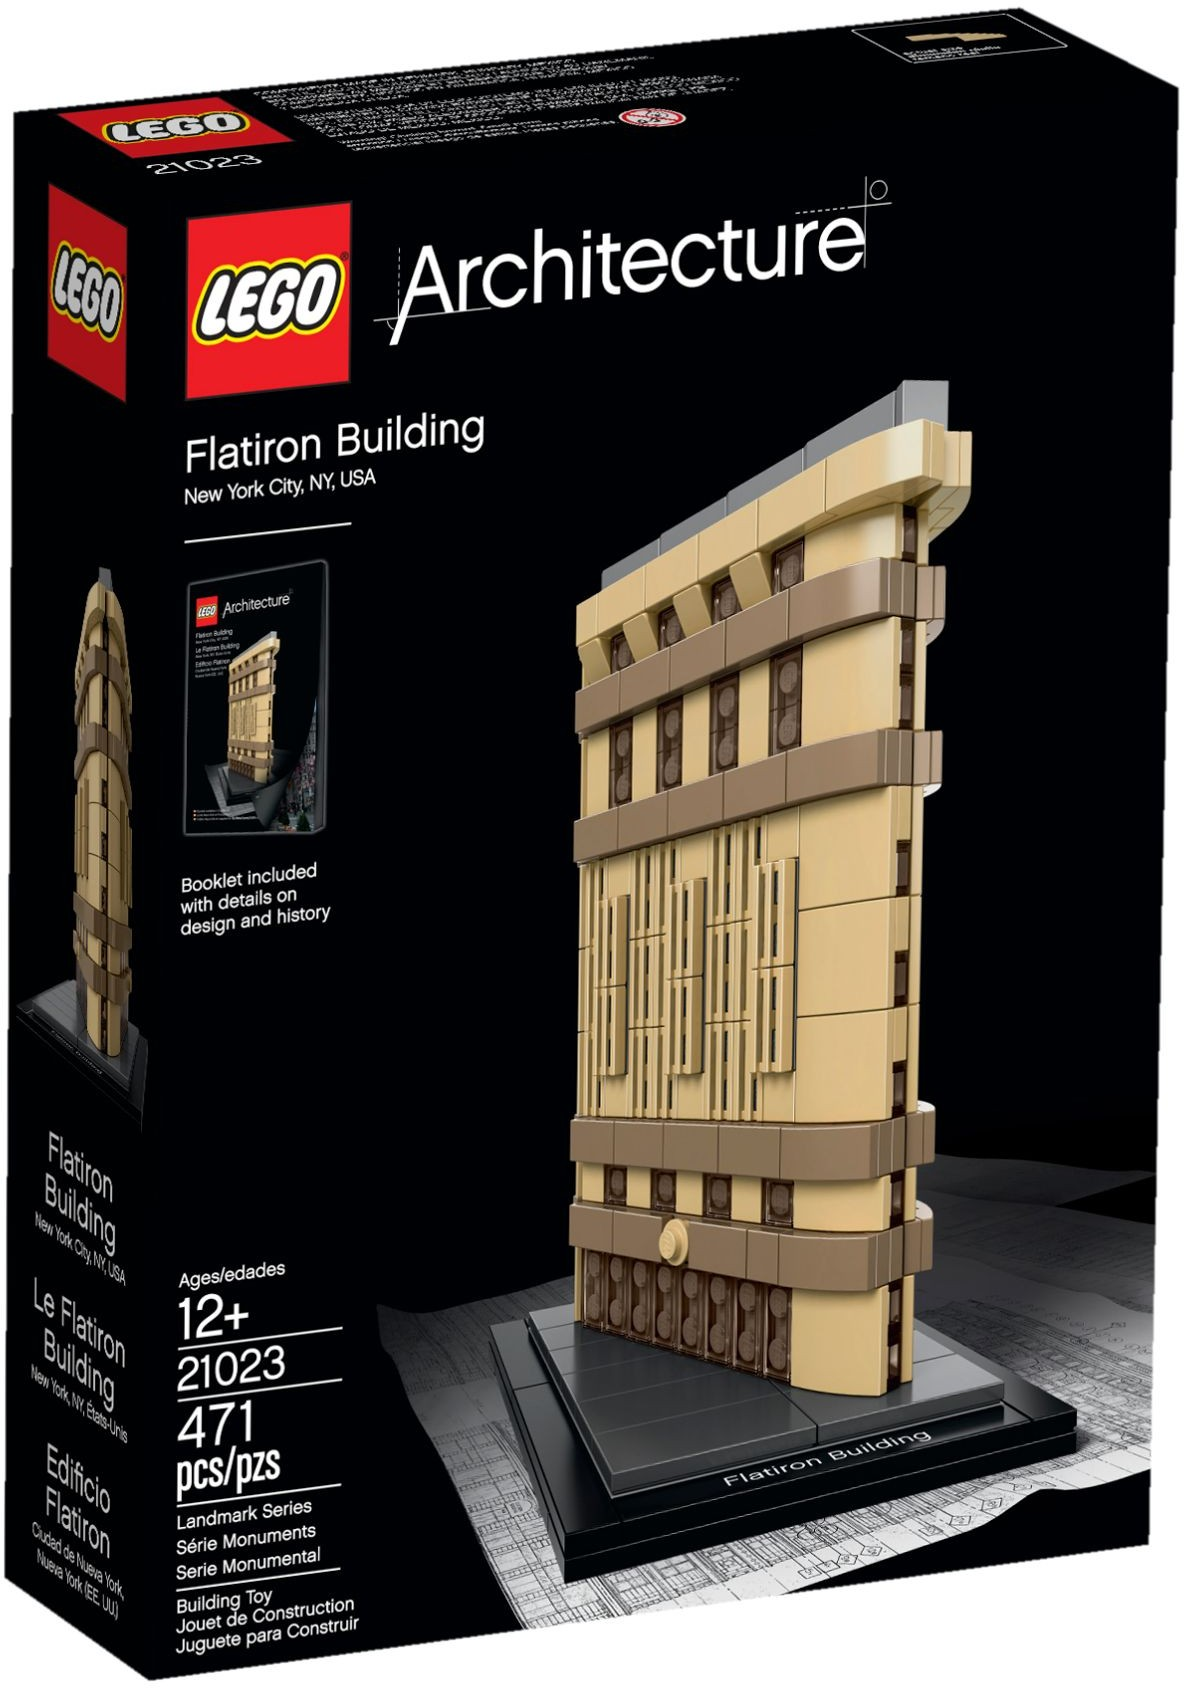 LEGO # 21023 ARCHITECTURE FLATIRON BUILDING NEW YORK